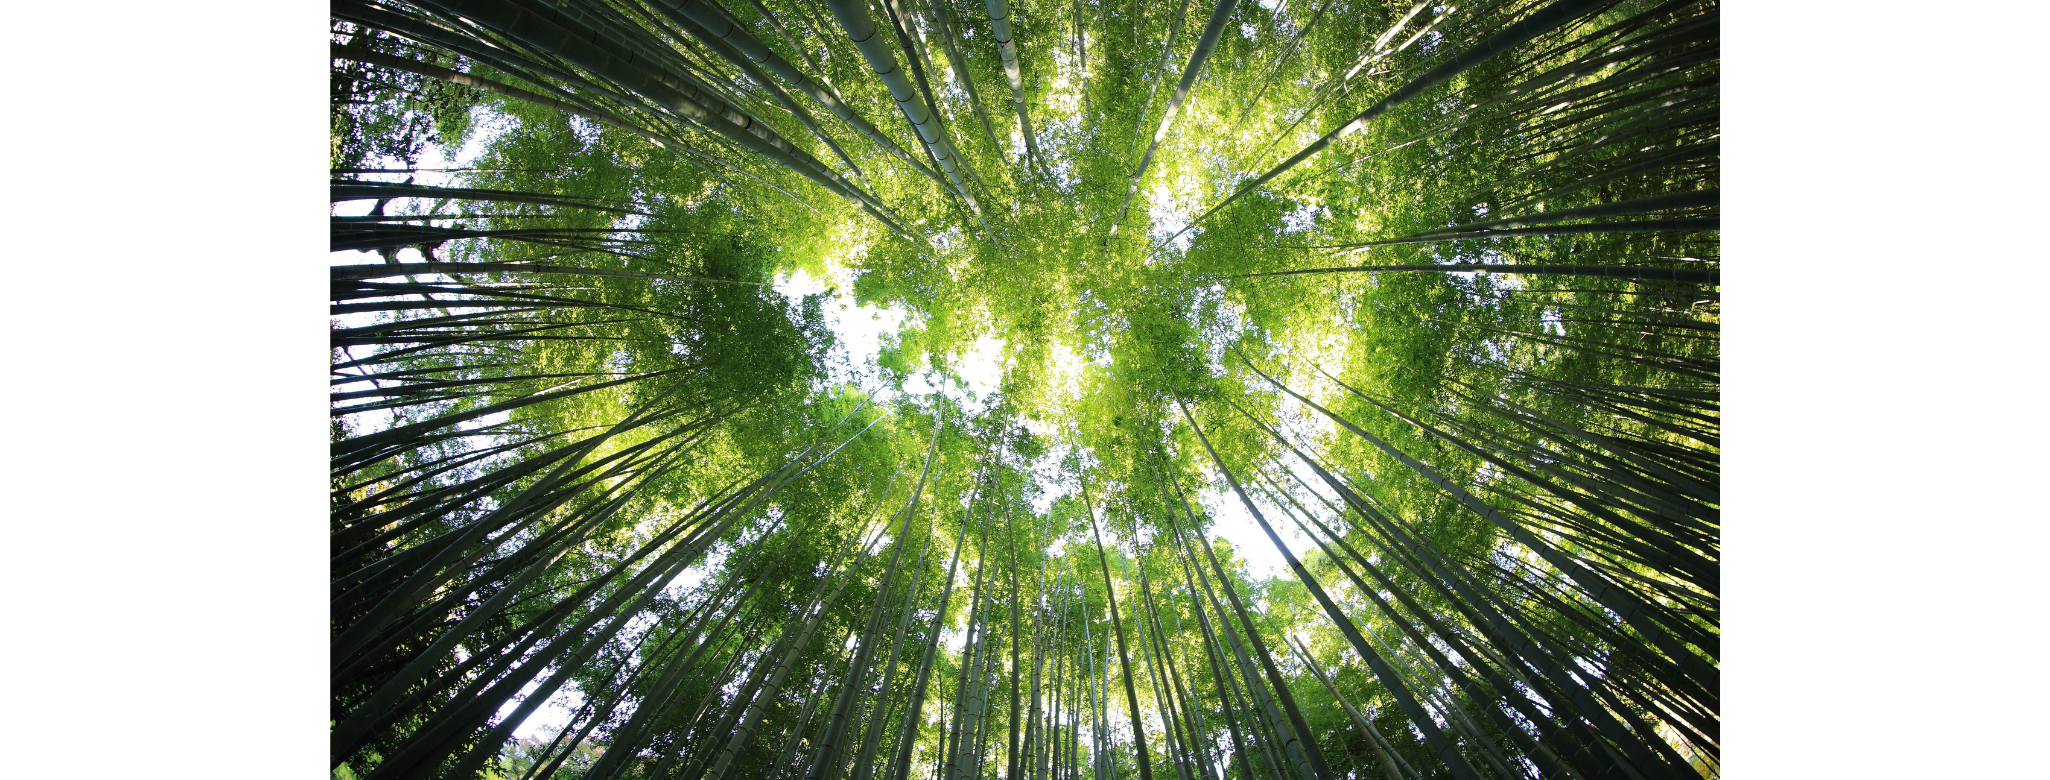 Perspective image looking up at the tops of trees in a forest